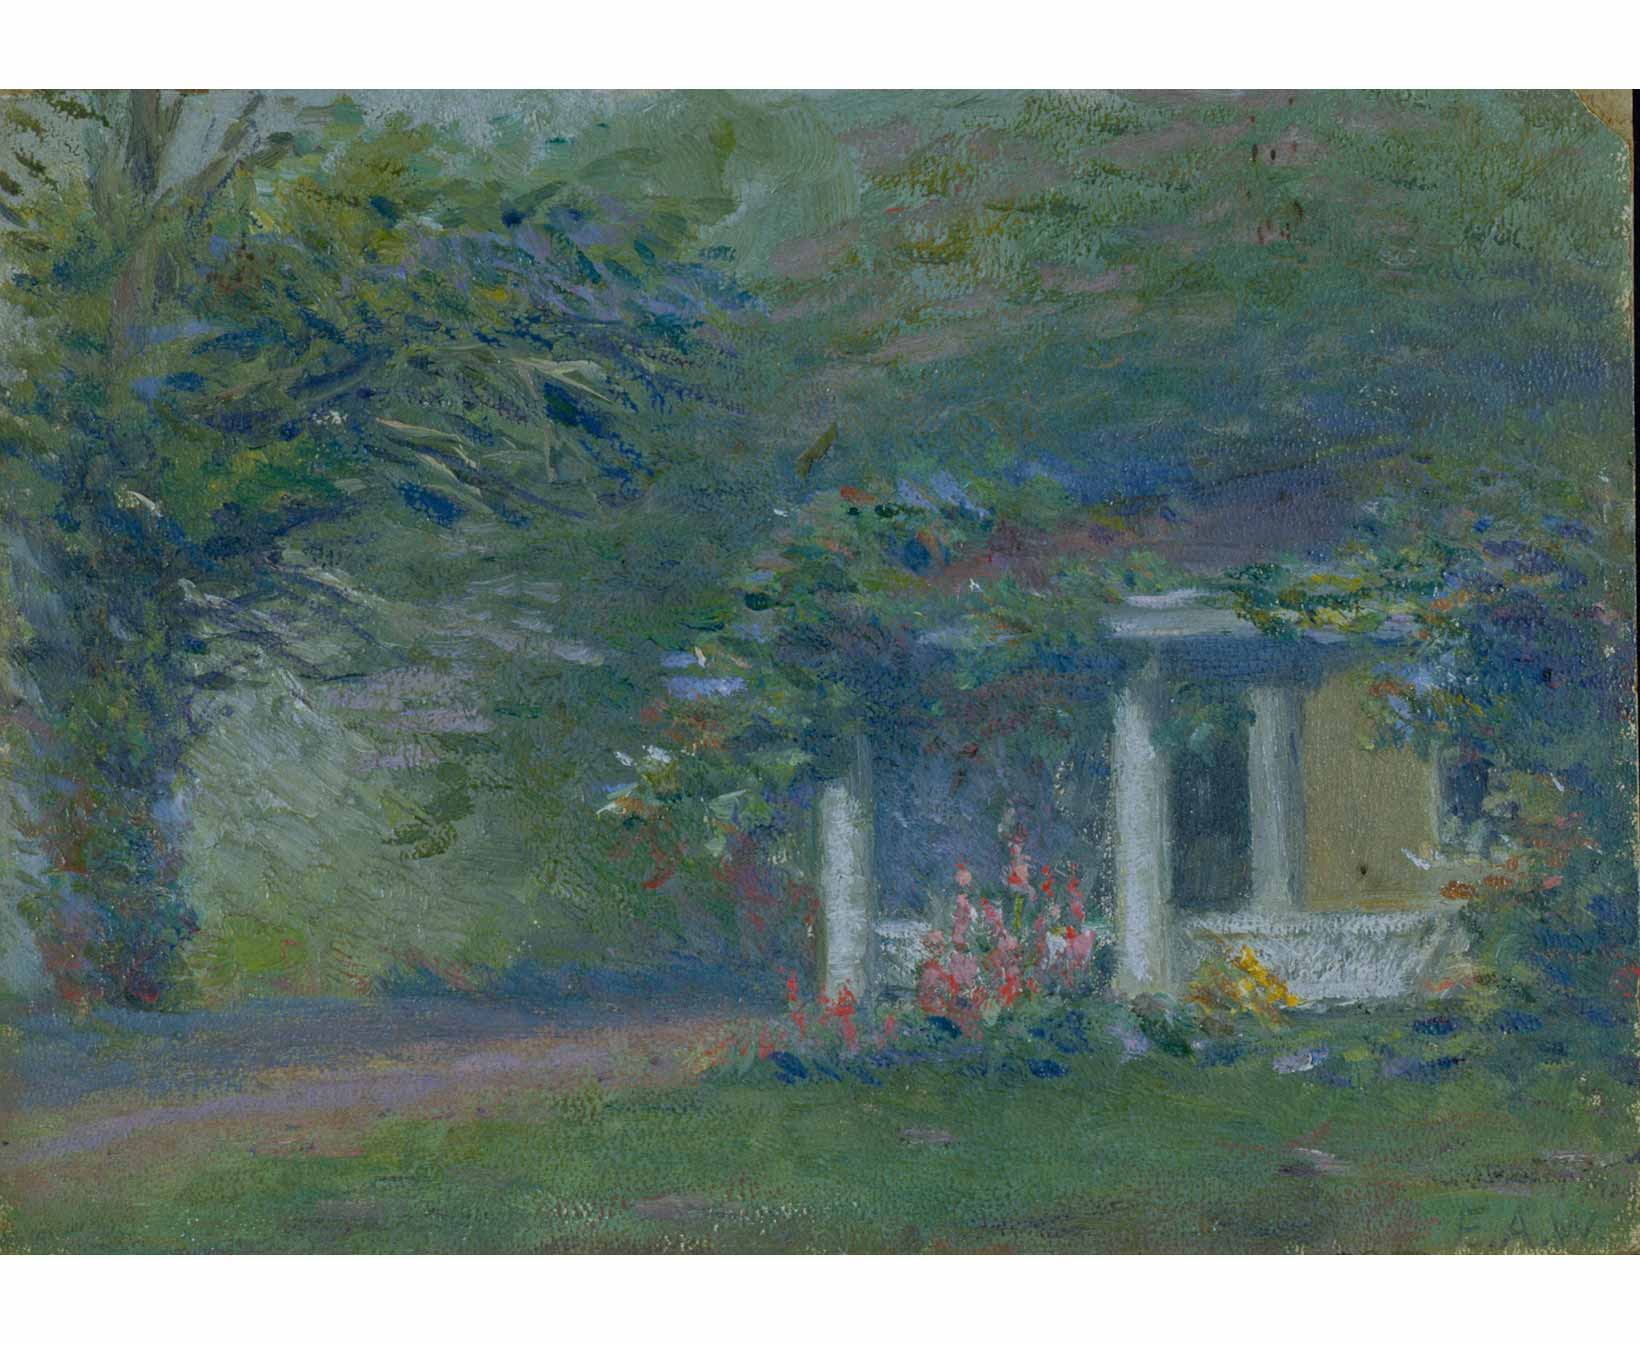 artwork of former first lady ellen axson wilson in old lyme ct ellen axson wilson 1860 1914 untitled view of the griswold house side porch oil on artist board 7 x 9